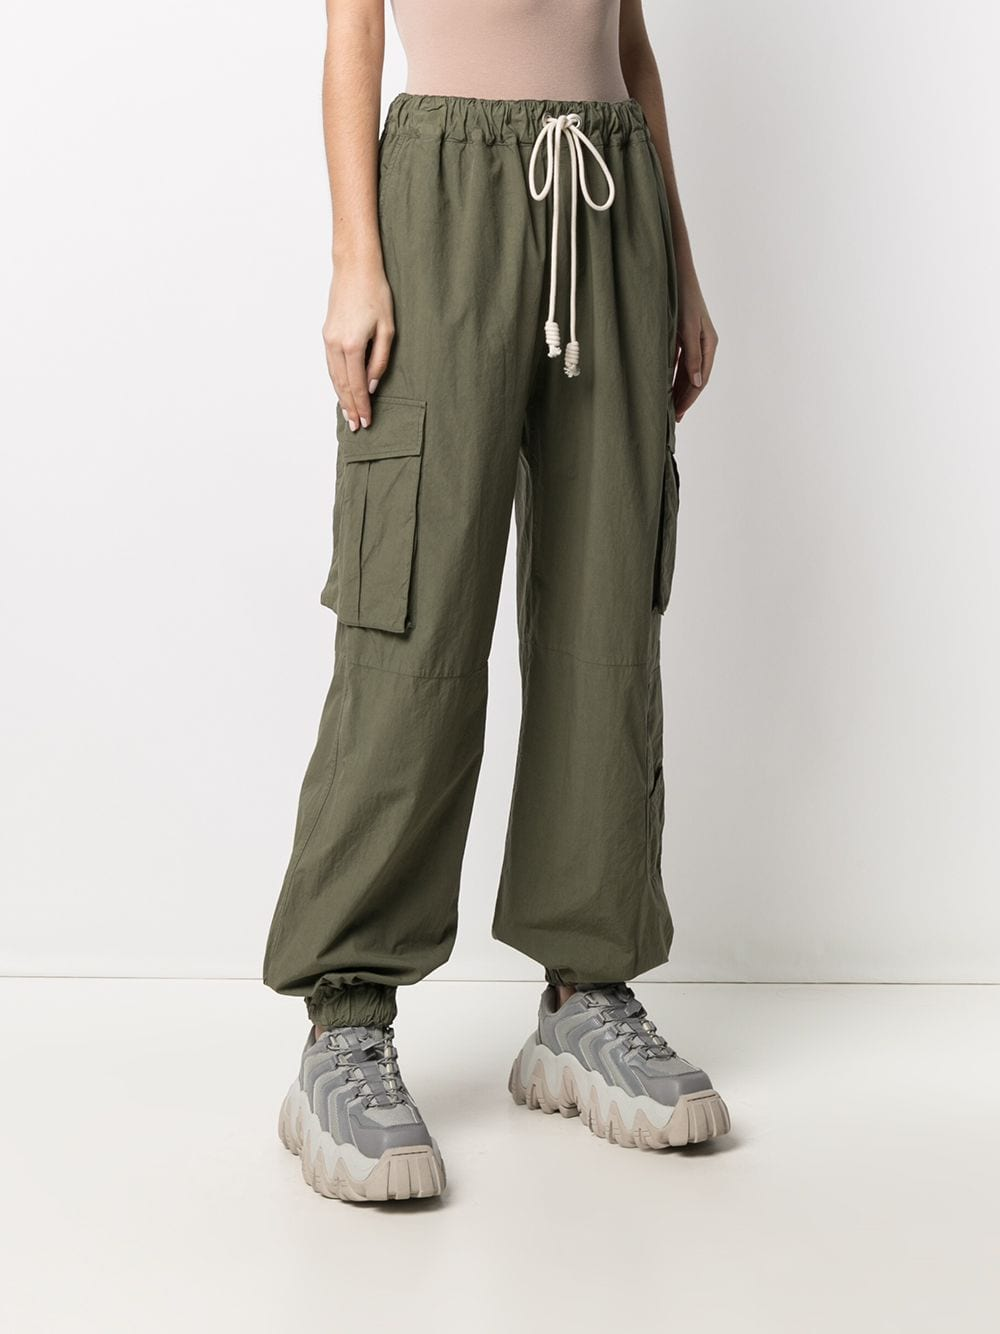 PALM ANGELS WOMEN ULTRALIGHT CARGO PANTS